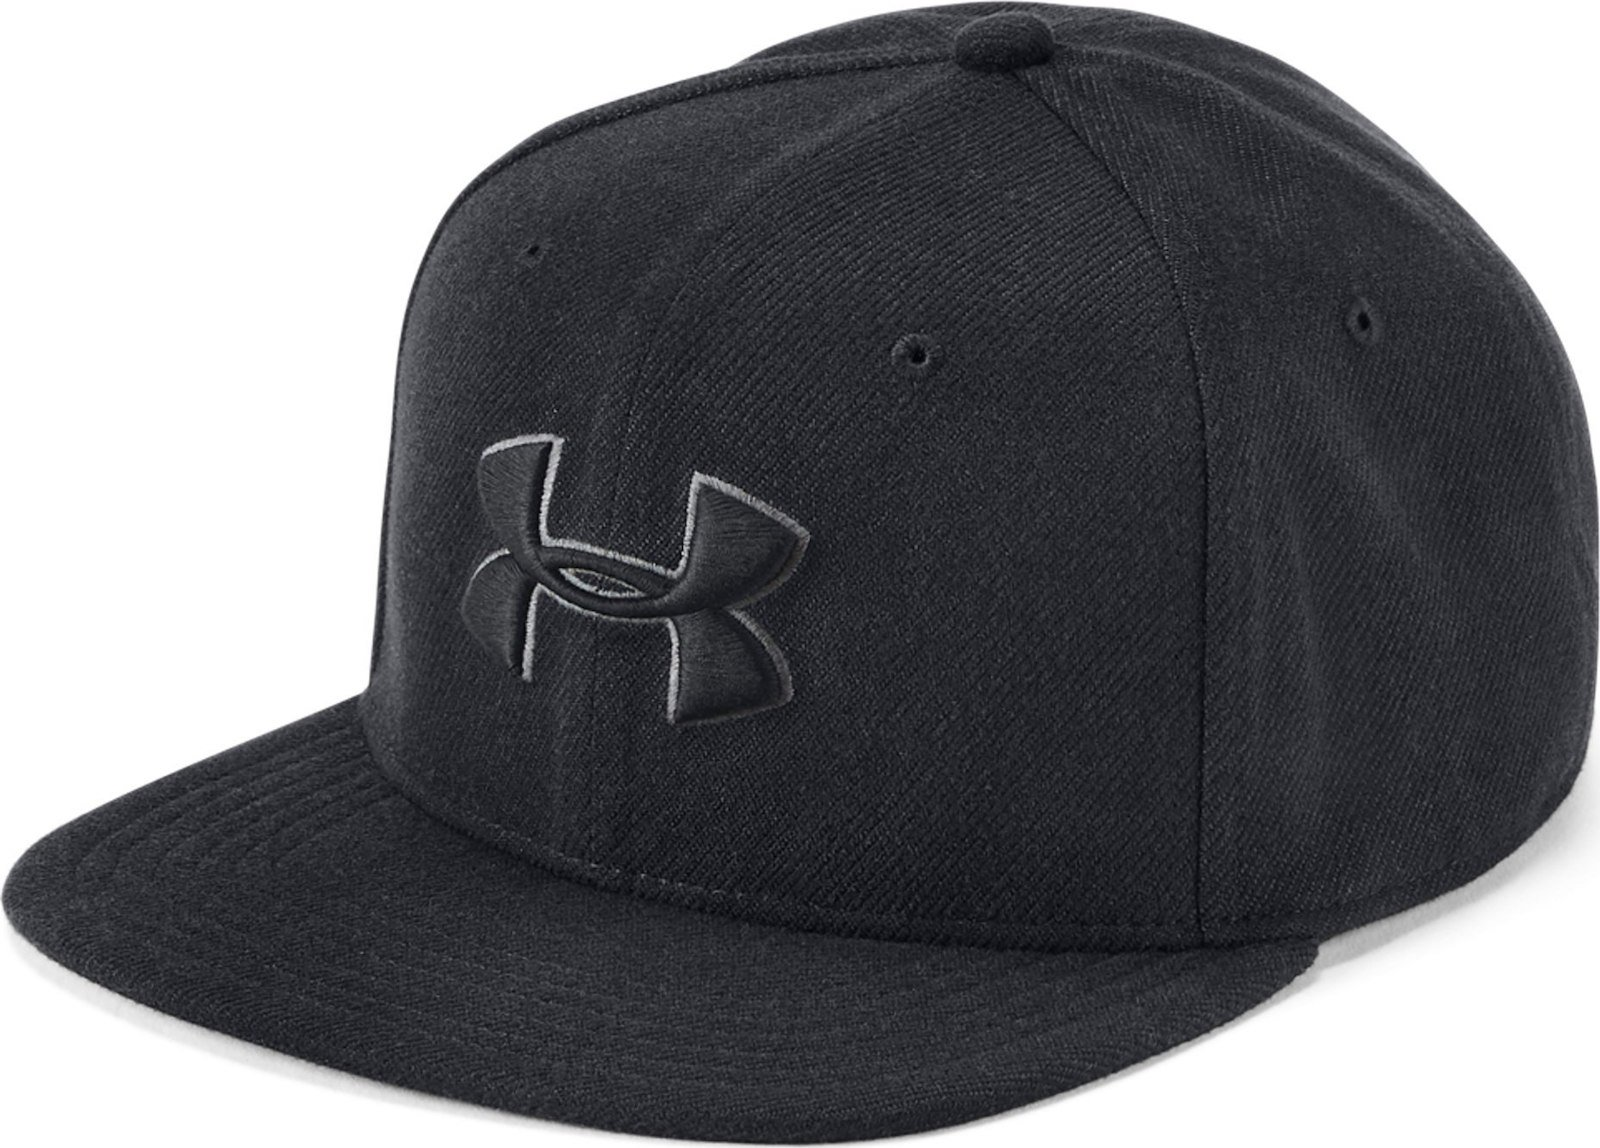 Kappe Under Armour Men's Huddle Snapback 2.0